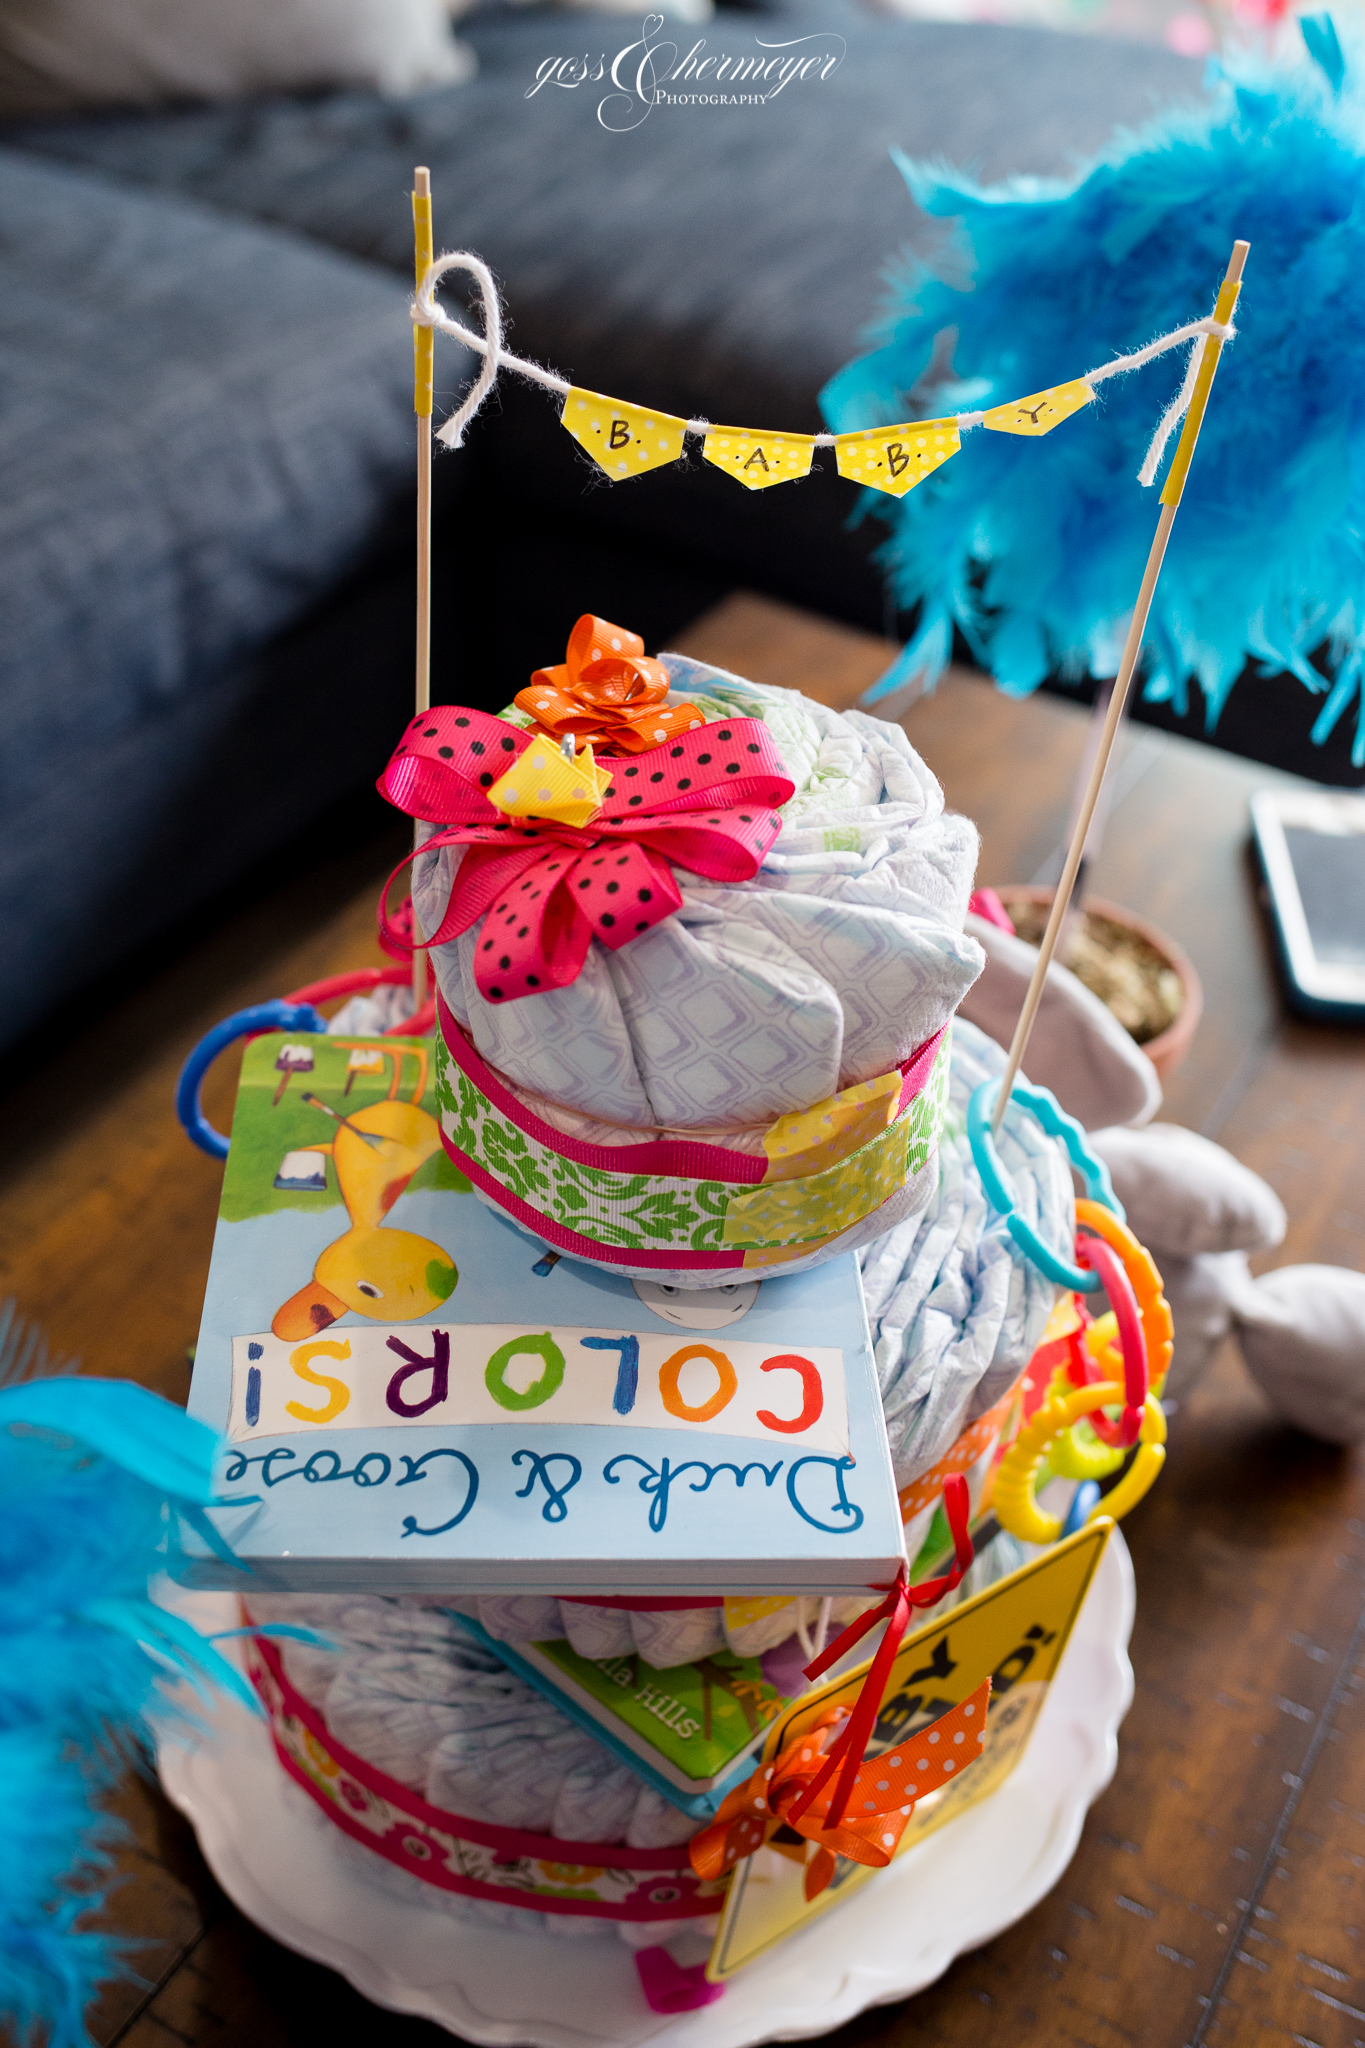 San Diego Baby Shower Photography by Goss & Hermeyer Photography1.jpg